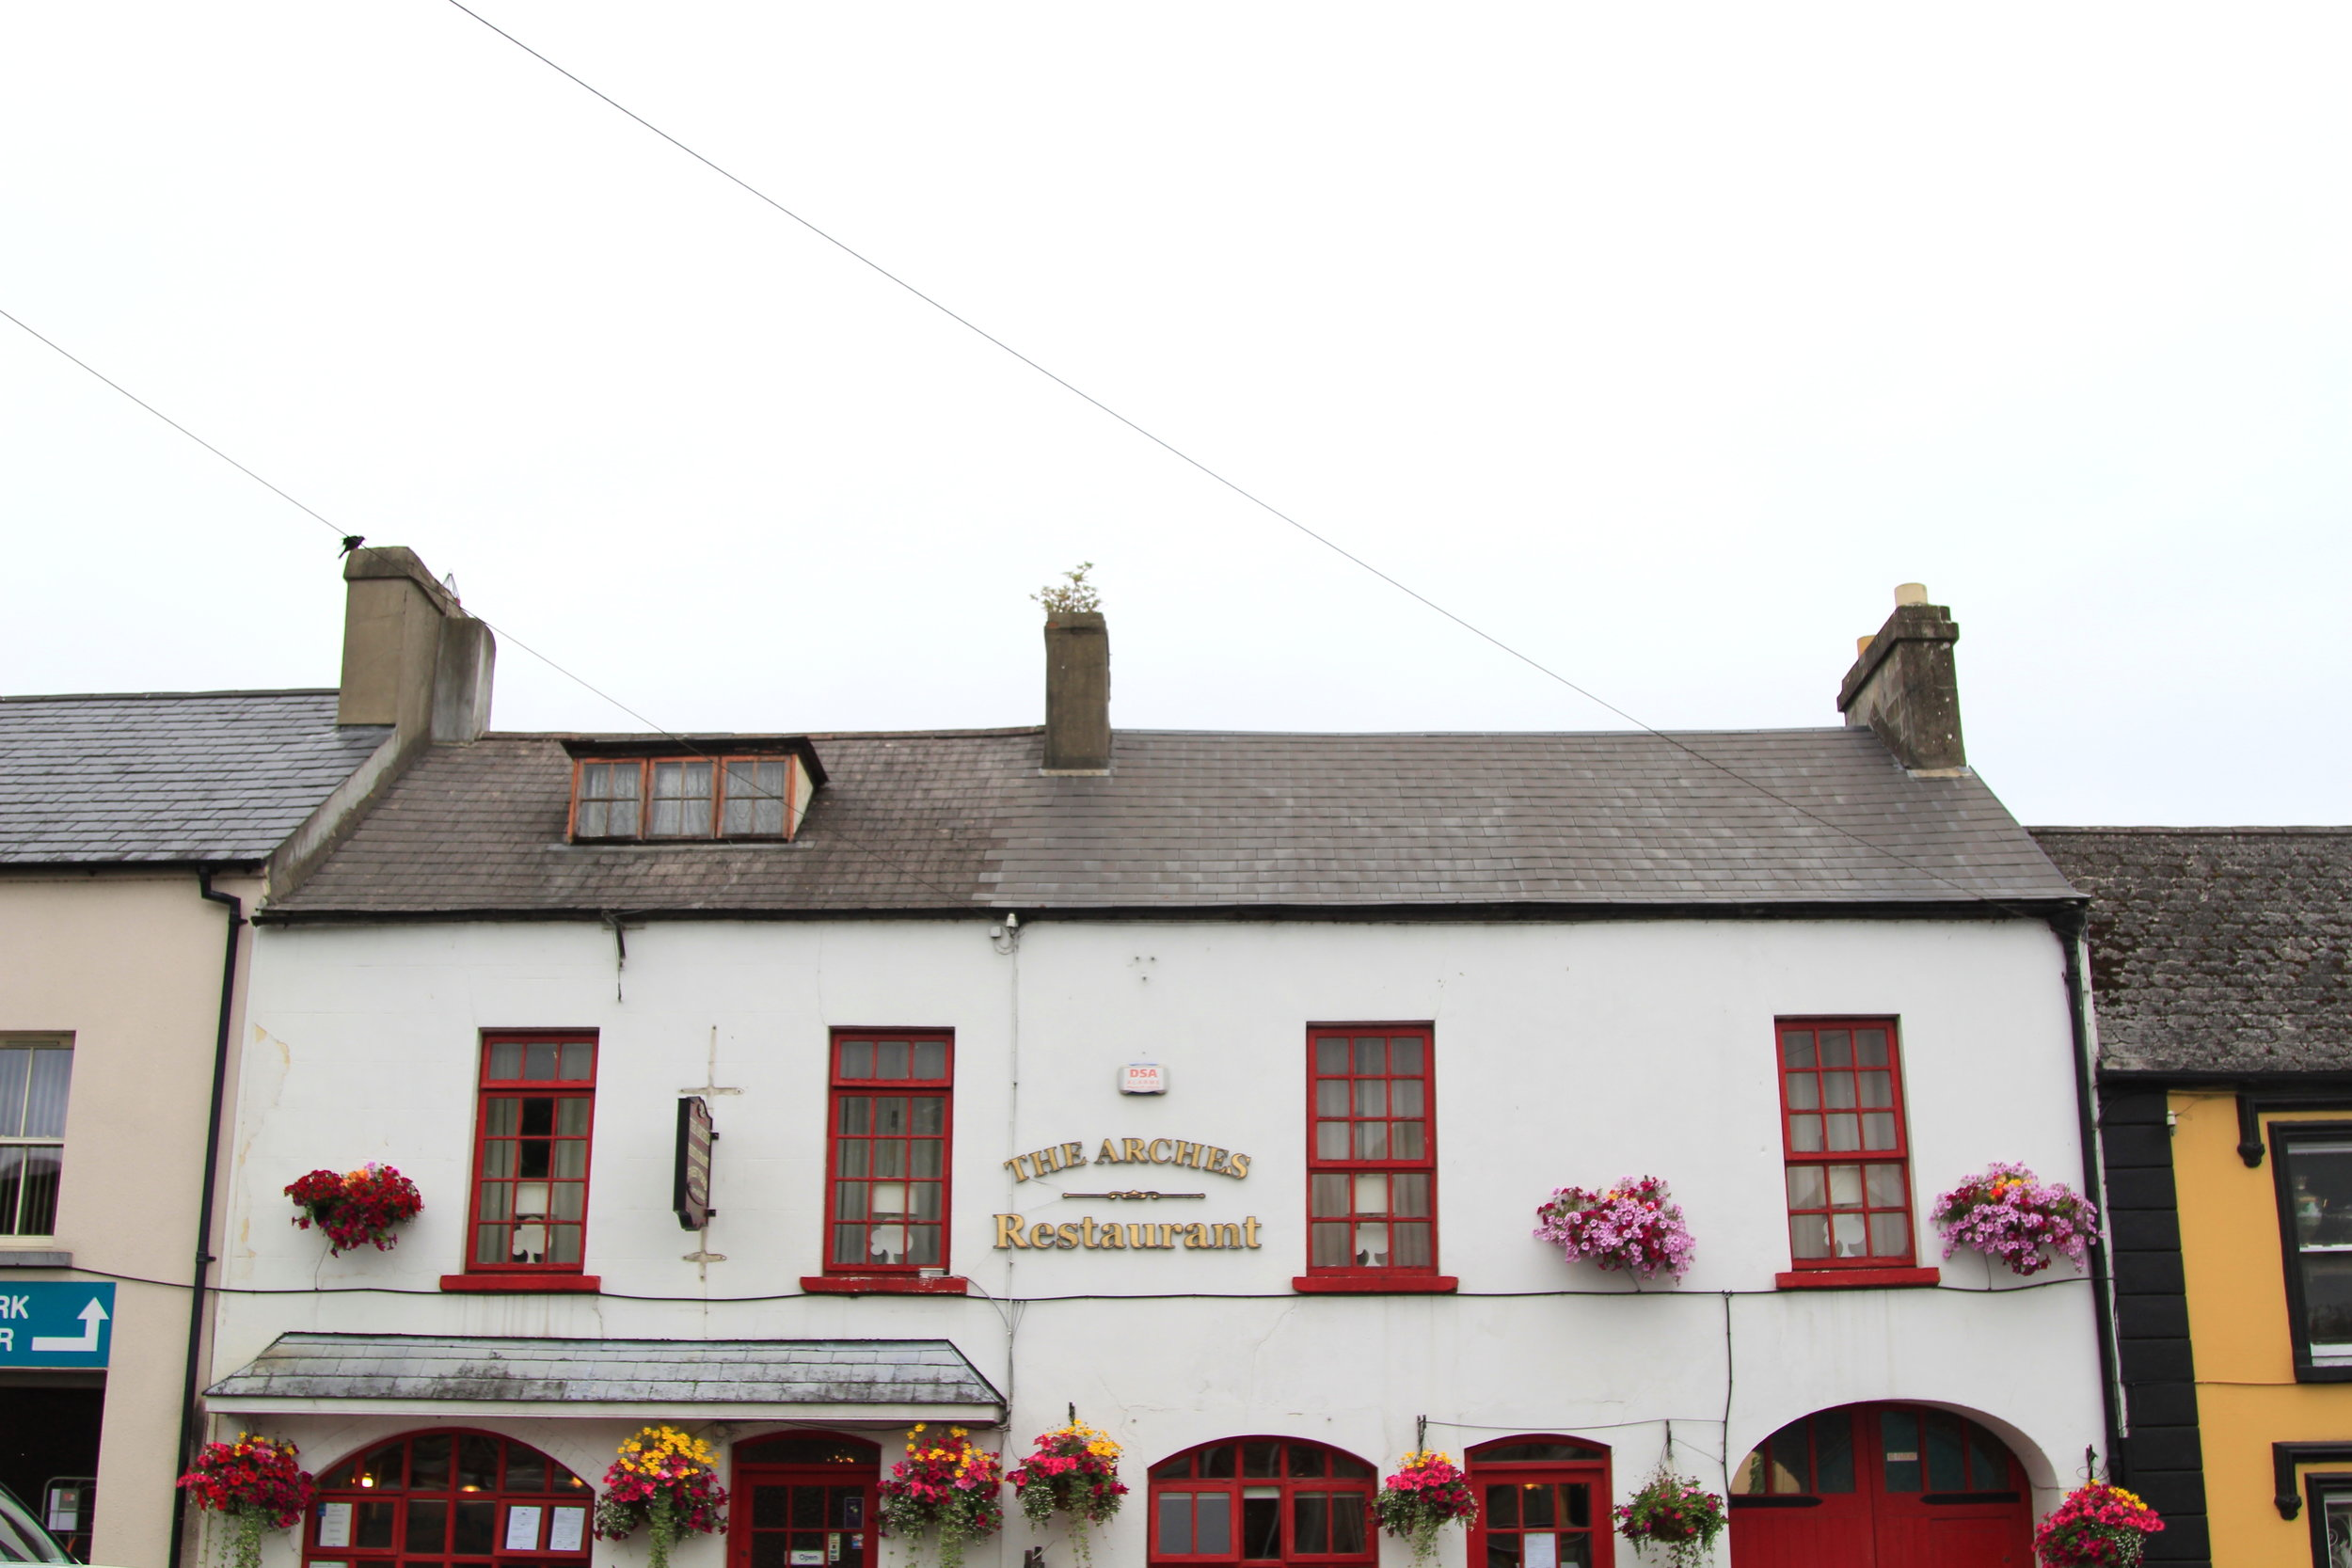 The Arches Hotel and Restaurant, Adare, Ireland